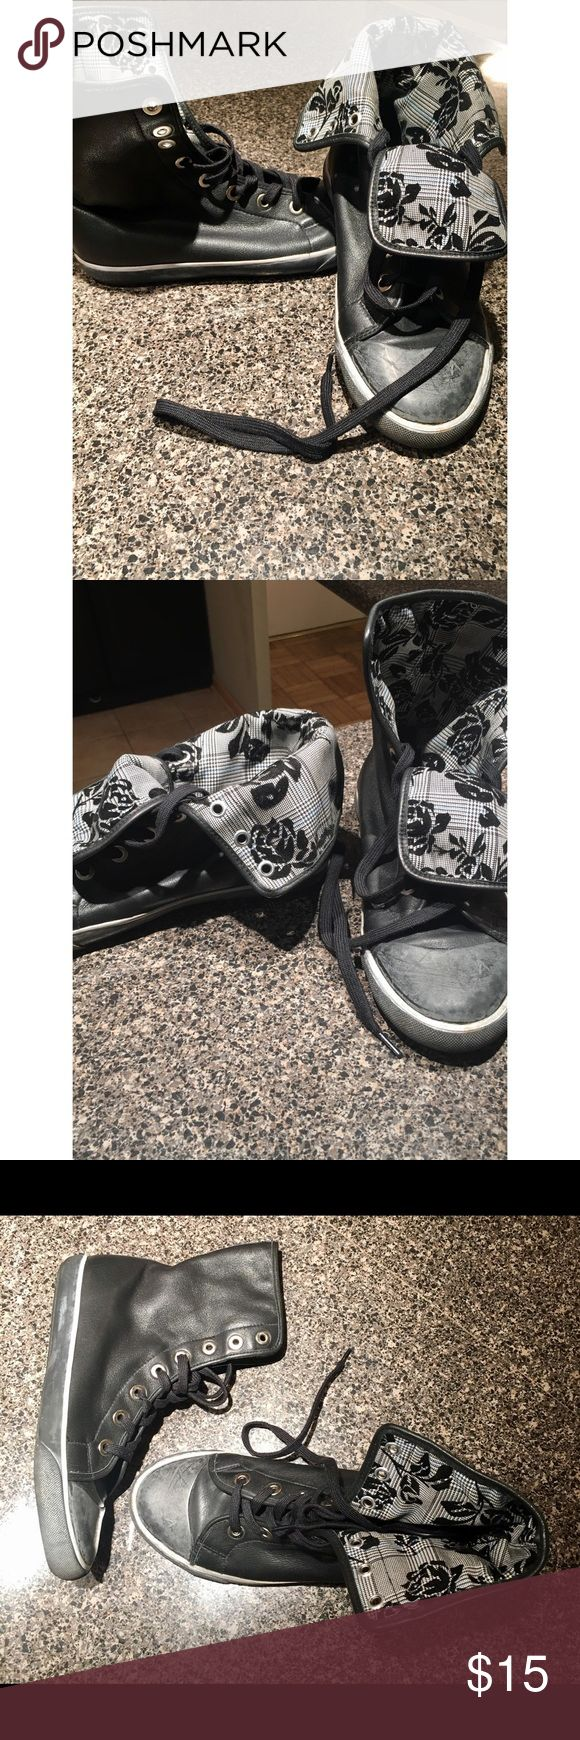 ⚫️ SALE ⚫️ Jessica Simpson High Tops - 7.5 Jessica Simpson Converse Inspired High Tops - 7.5. Floral interior lining. Used. See pictures for condition. Jessica Simpson Shoes